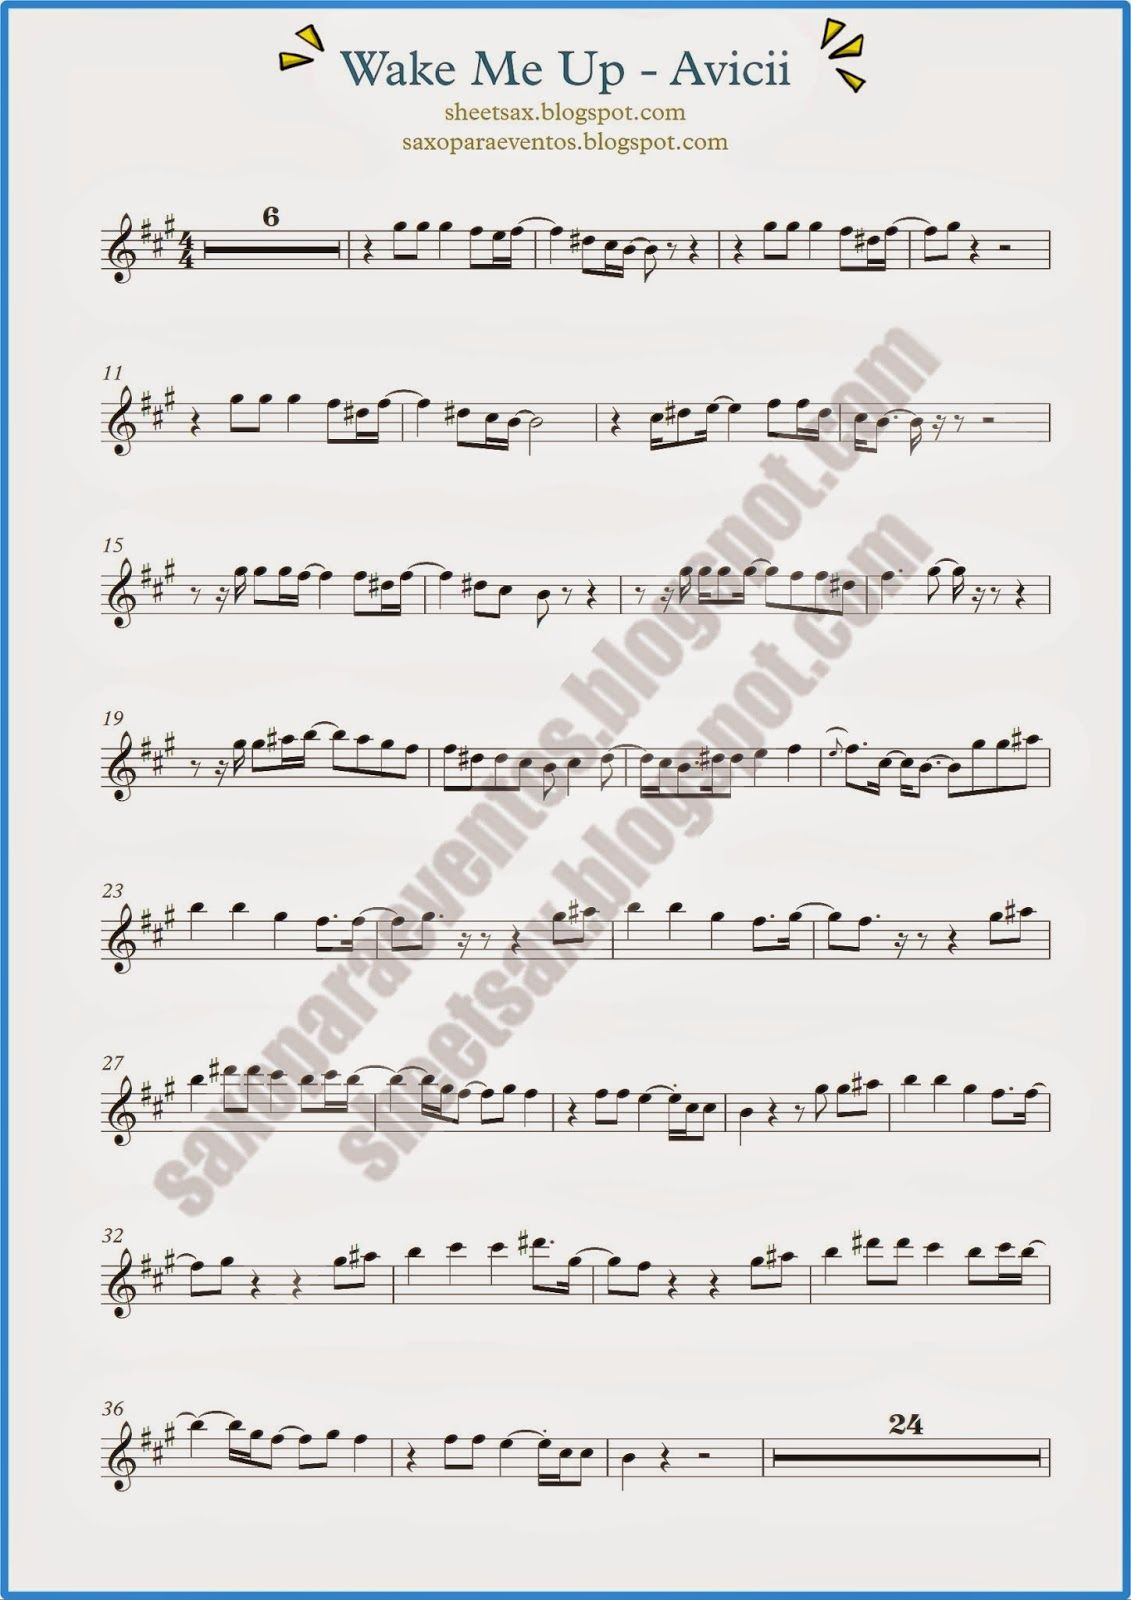 Wake Me Up By Avicii Sheet Music And Playalong For Your